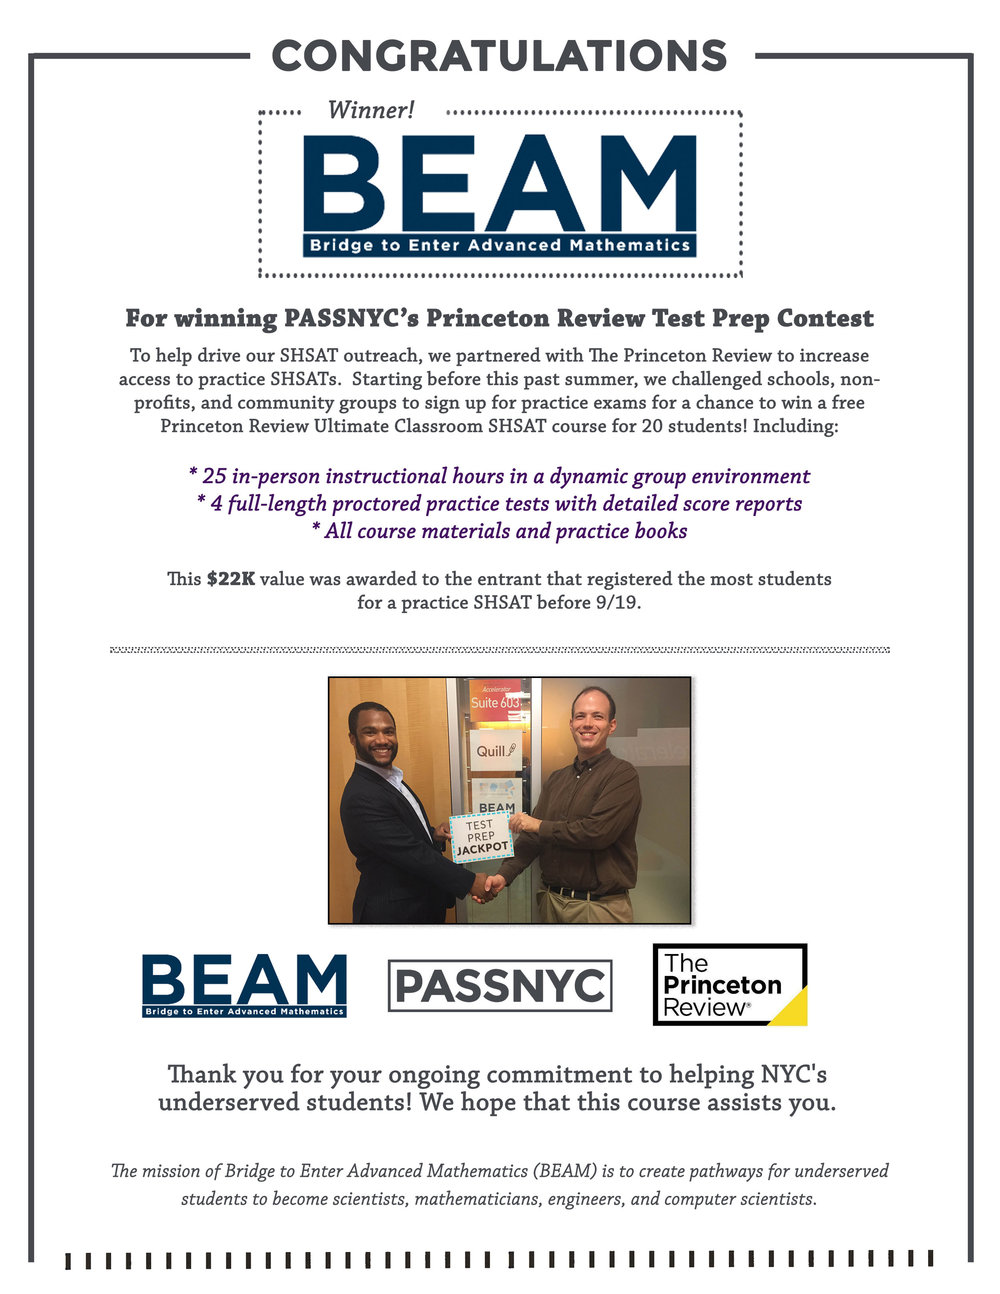 Pictured above: PASSNYC Founder Ryan J. S. Baxter awards contest prize to BEAM Founder Daniel Zaharopol